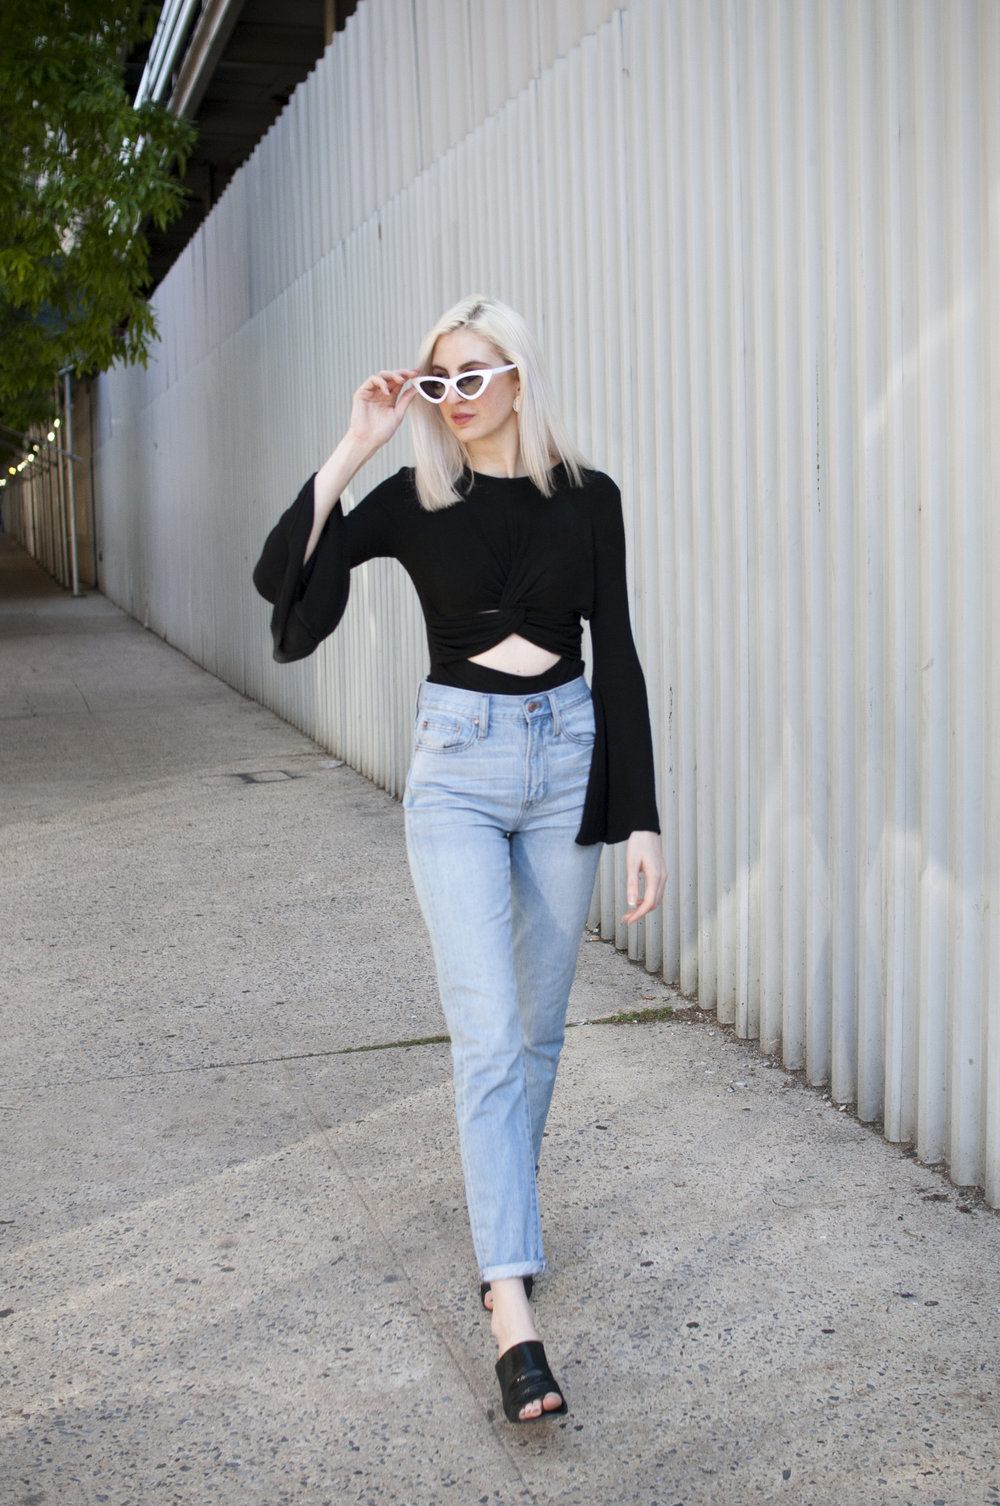 audra koch, mom jeans outfit, boyfriend jeans outfit, cushnie et ochs, bell sleeve top, block heel mules, heeled mule sandals, cat eye sunglasses, white sunglasses, summer outfit inspiration